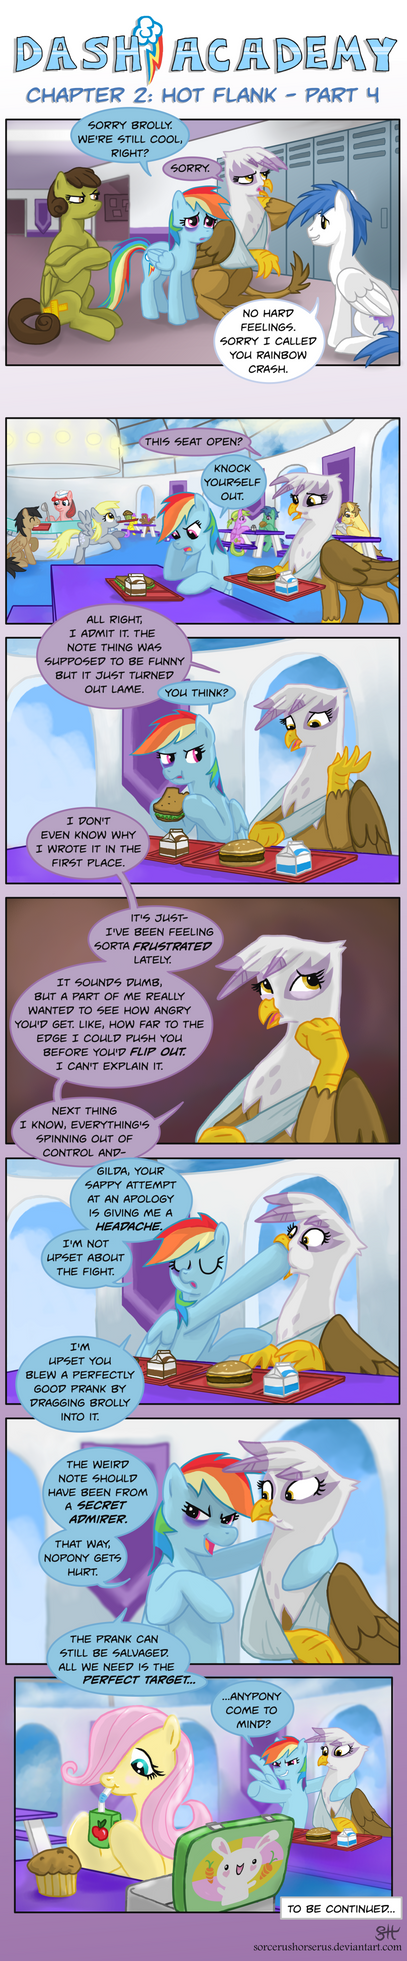 Dash Academy Chapter 2 - Hot Flank #4 by SorcerusHorserus